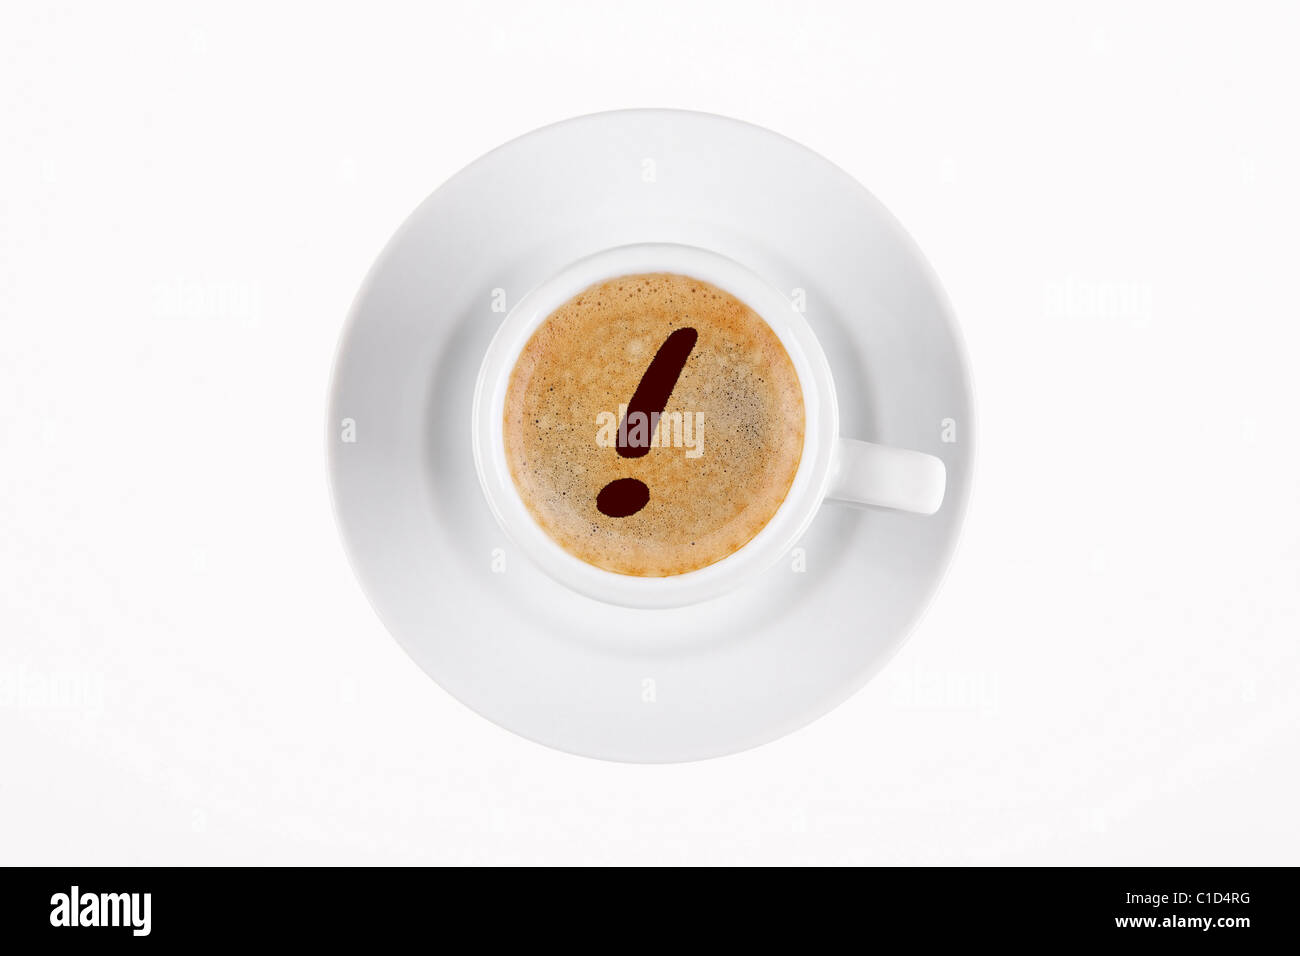 digital enhancement - clip image - exclamation point mark sign written on cafe crema coffee foam - Stock Image